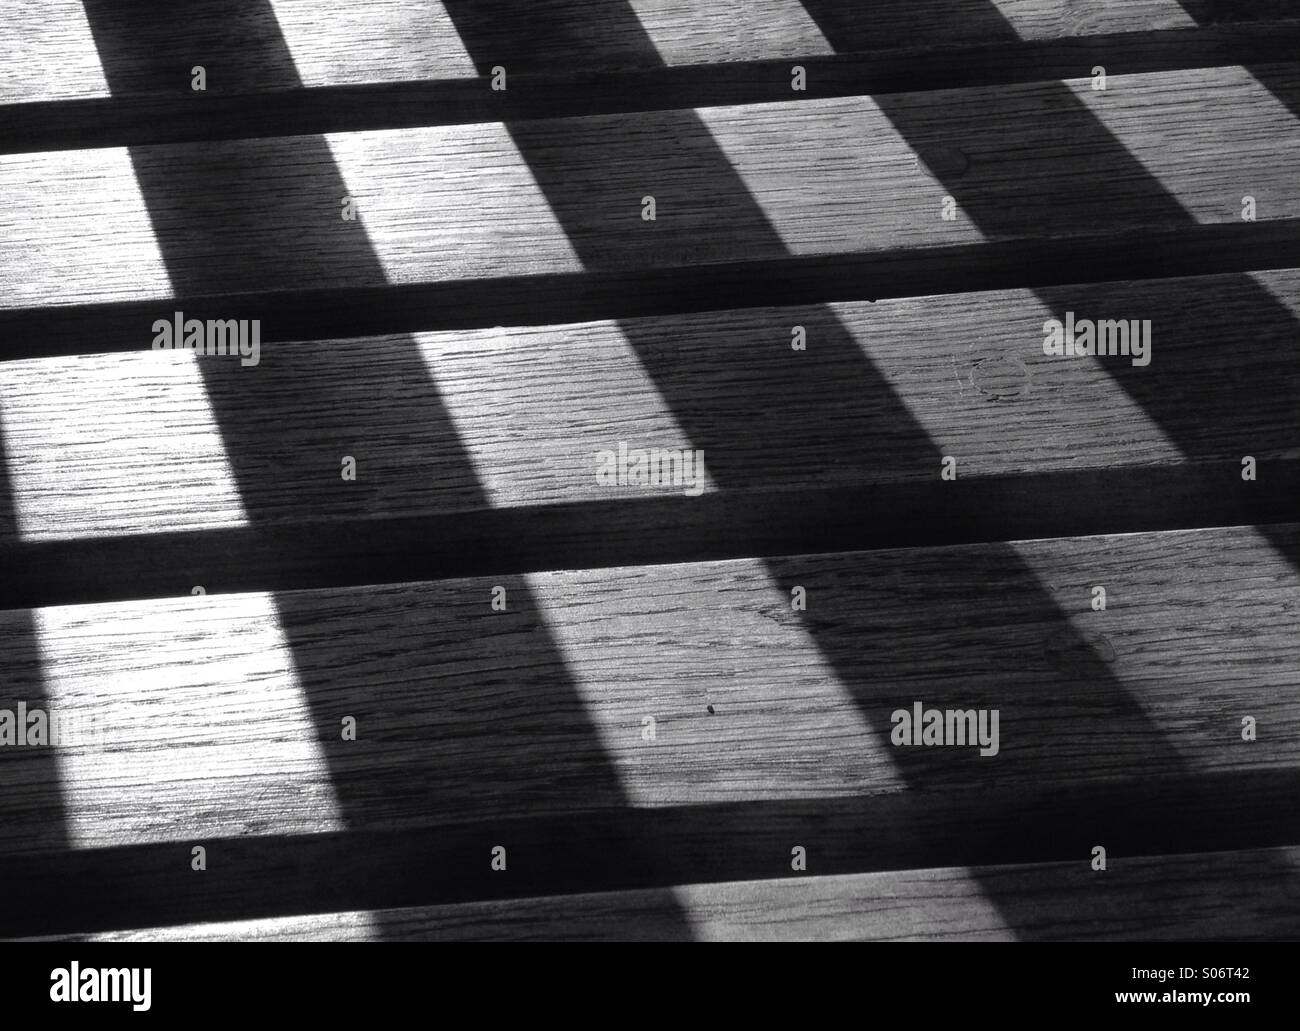 Sun drenched wooden bench - Stock Image